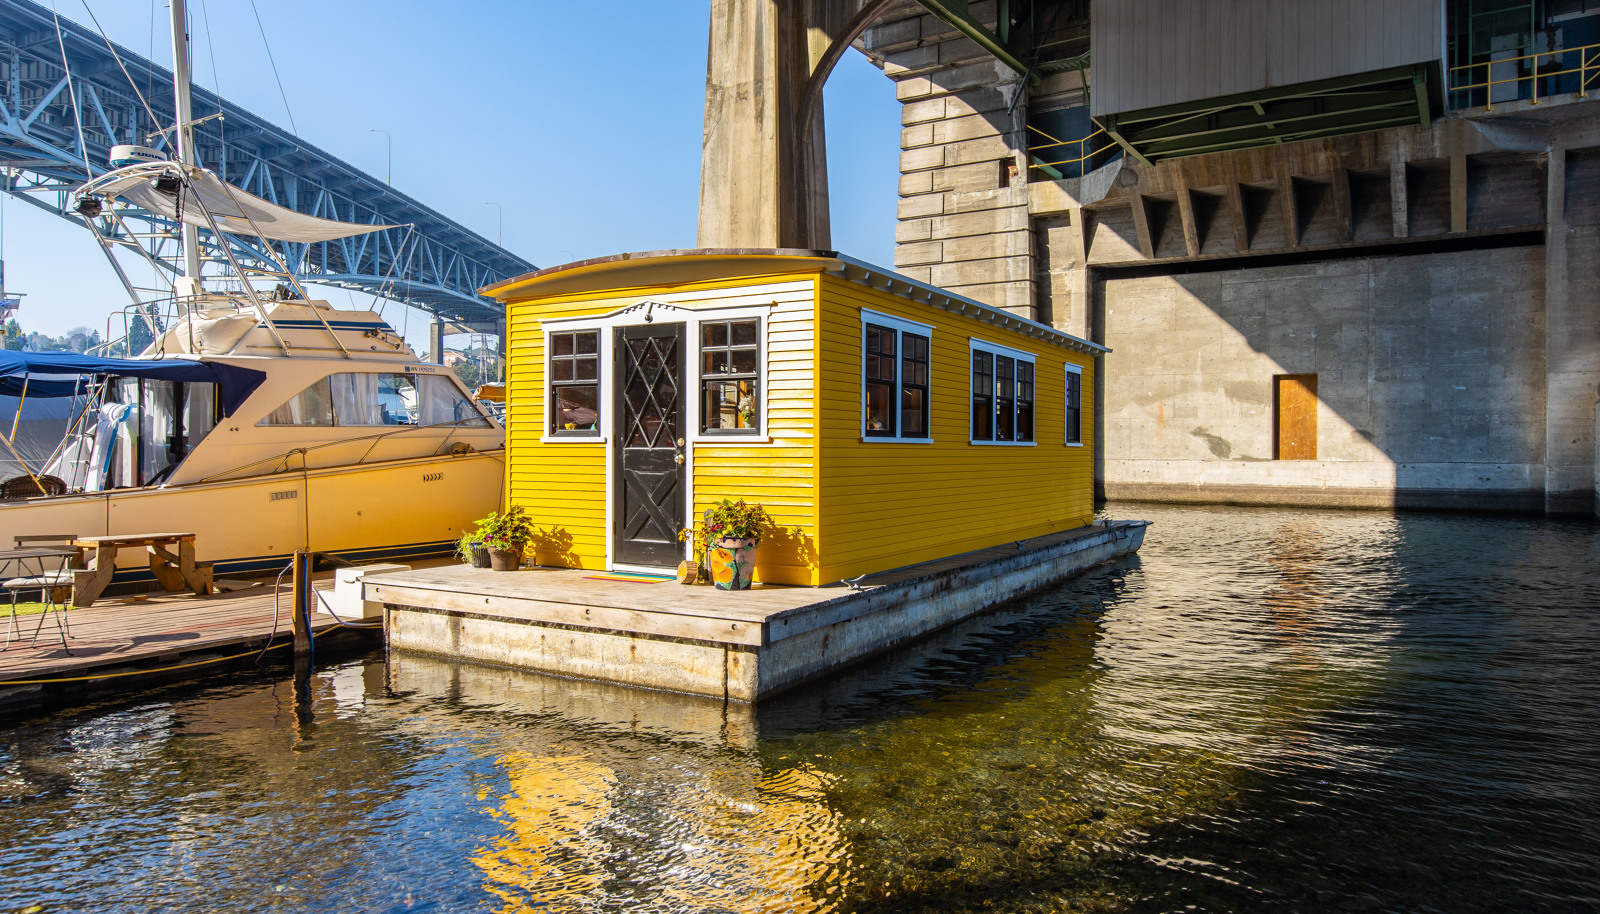 "This charming Limoncello houseboat on Lake Union has open water views of the University of Washington and is on the market for $259,000. It features an end-of-dock slip with room for a small boat, a river rock propane fireplace, built-in desk, dining nook, washer & dryer and a community garden. Listing by Alan Braden,{&nbsp;}<a  href=""https://www.rsir.com/homes-for-sale/3304-fuhrman-ave-e-10-seattle-wa-98102-1650484-1001782/"" target=""_blank"" title=""https://www.rsir.com/homes-for-sale/3304-fuhrman-ave-e-10-seattle-wa-98102-1650484-1001782/"">more info online</a>. (Image: Nicolas Gerlach /{&nbsp;}<a  href=""https://www.instagram.com/apnwphotographer/"" target=""_blank"" title=""https://www.instagram.com/apnwphotographer/"">@apnwphotographer</a>){&nbsp;}"